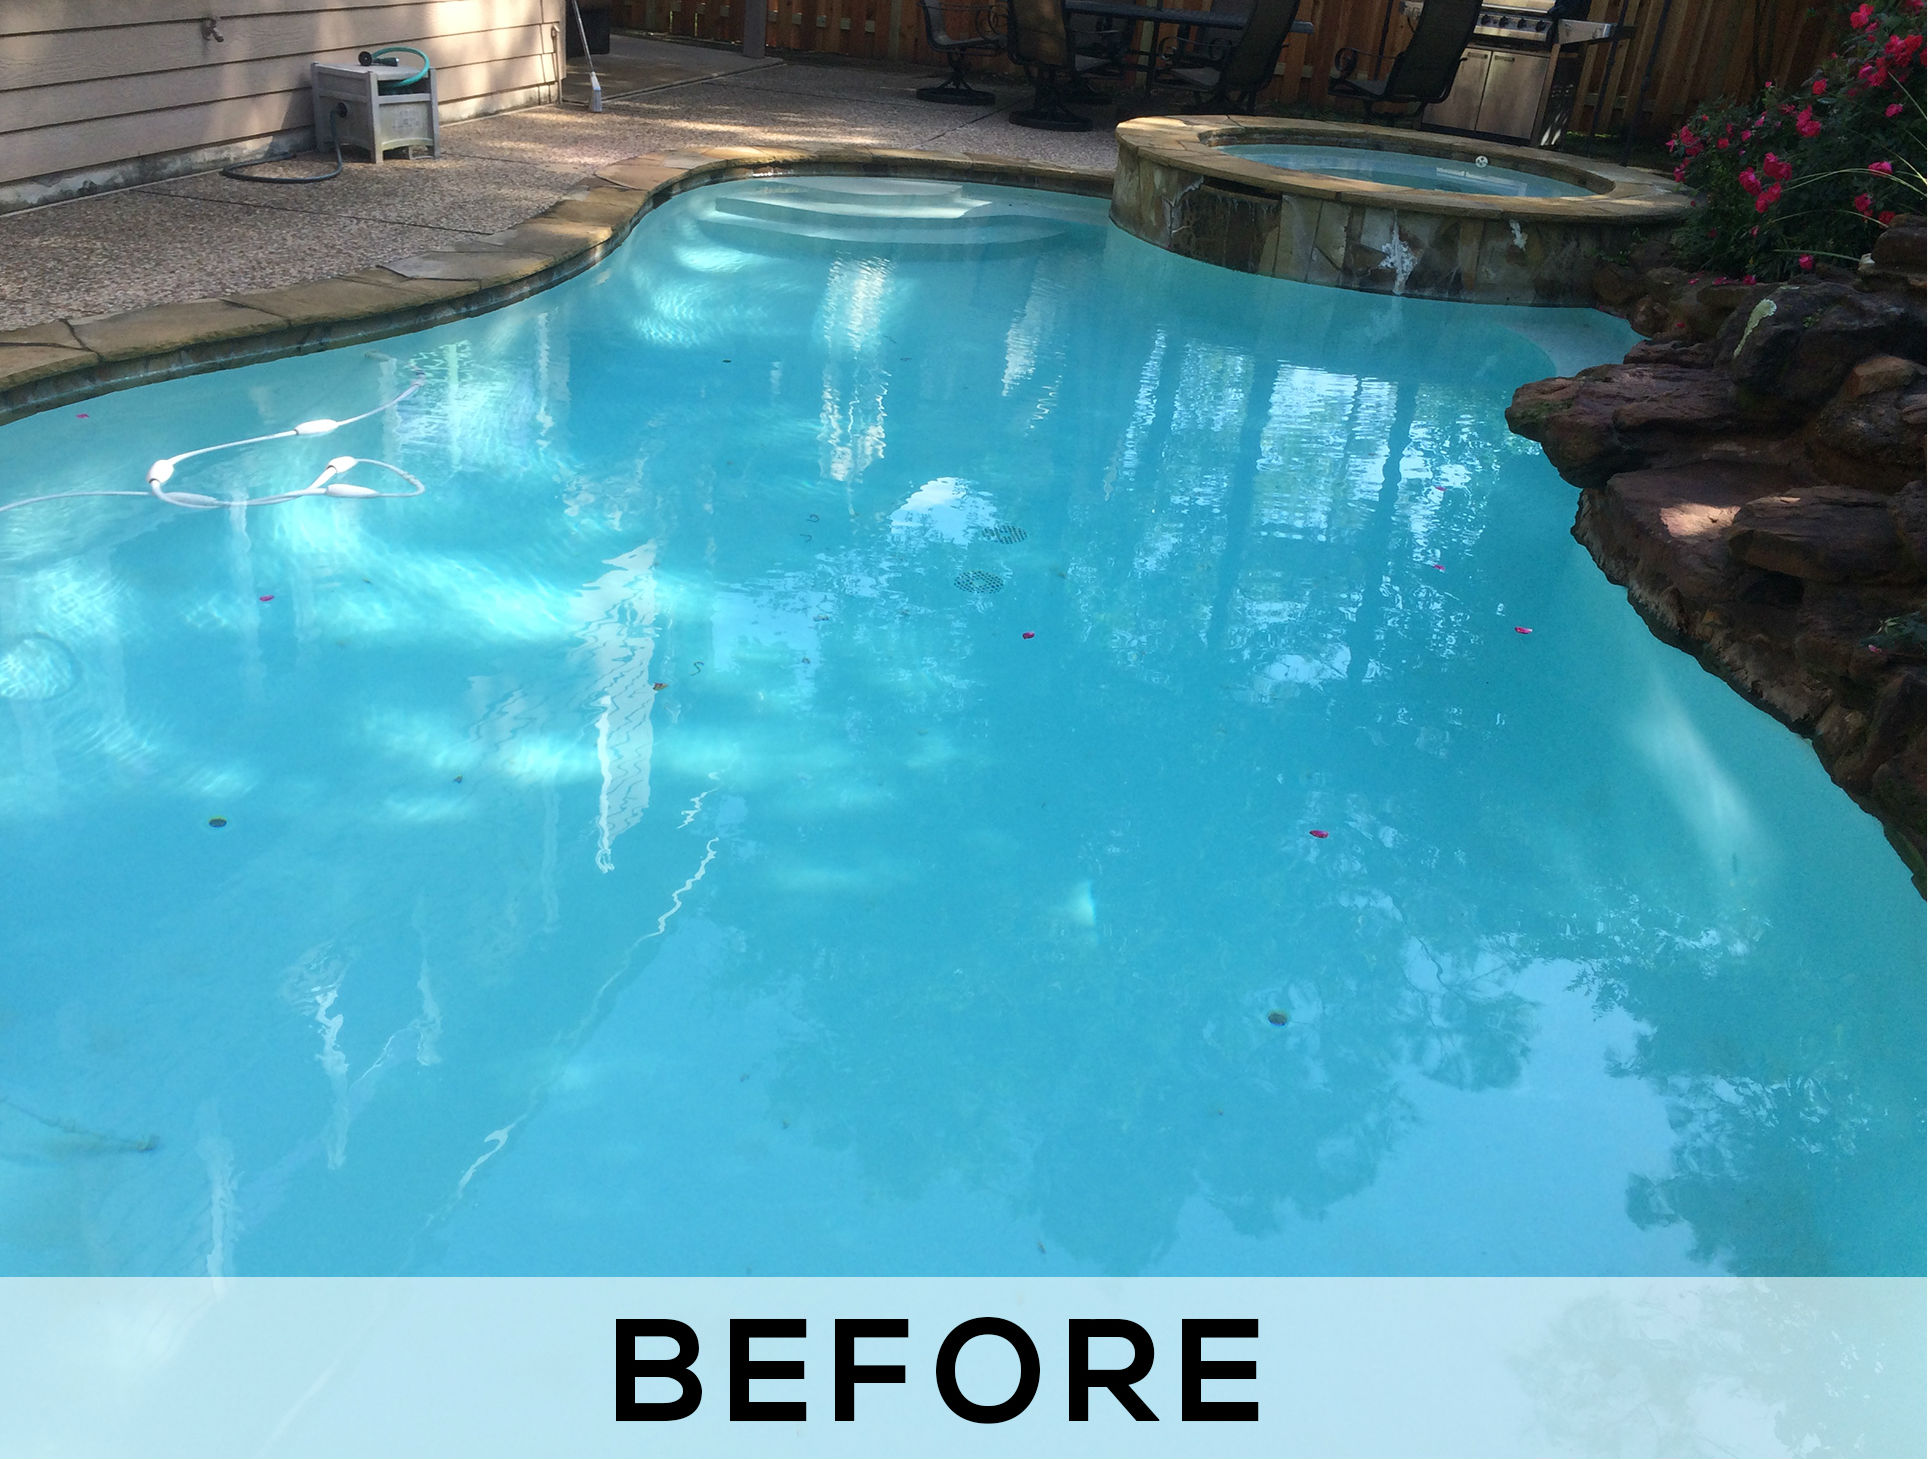 Pool Resurfacing Service - Before